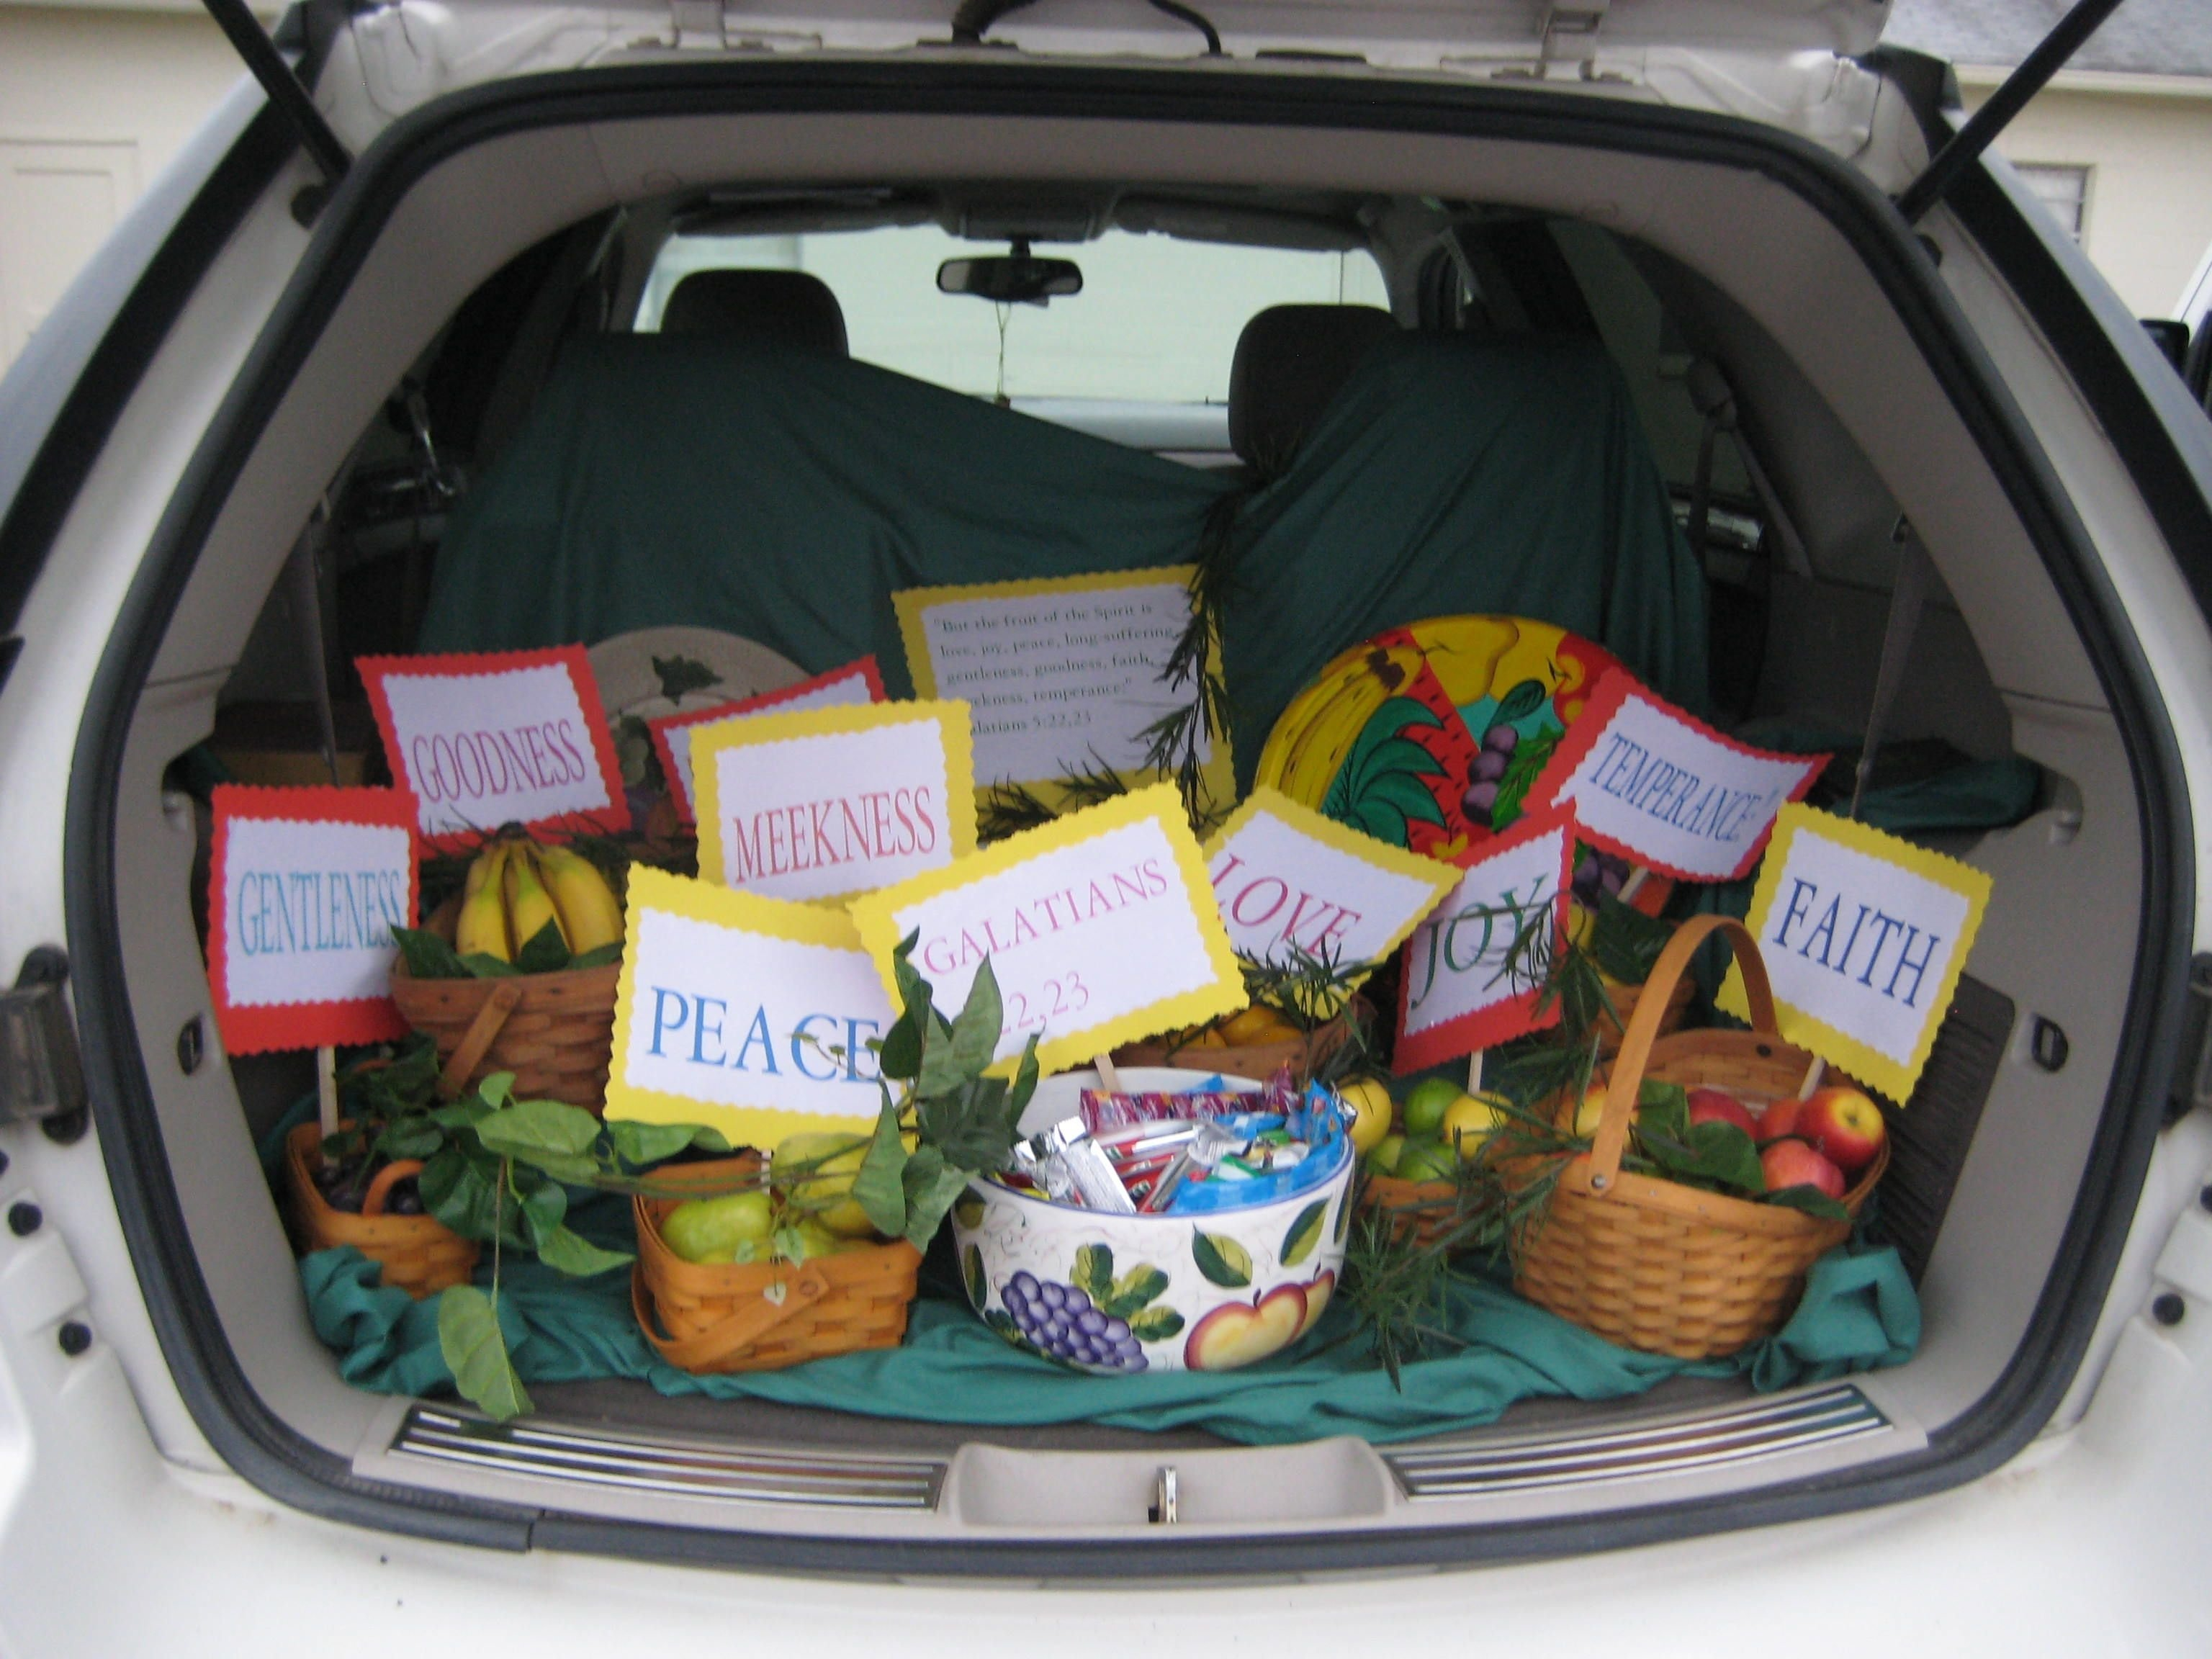 10 Attractive Biblical Trunk Or Treat Decorating Ideas bible story trunk or treat fruits of the spirit galatians 52223 1